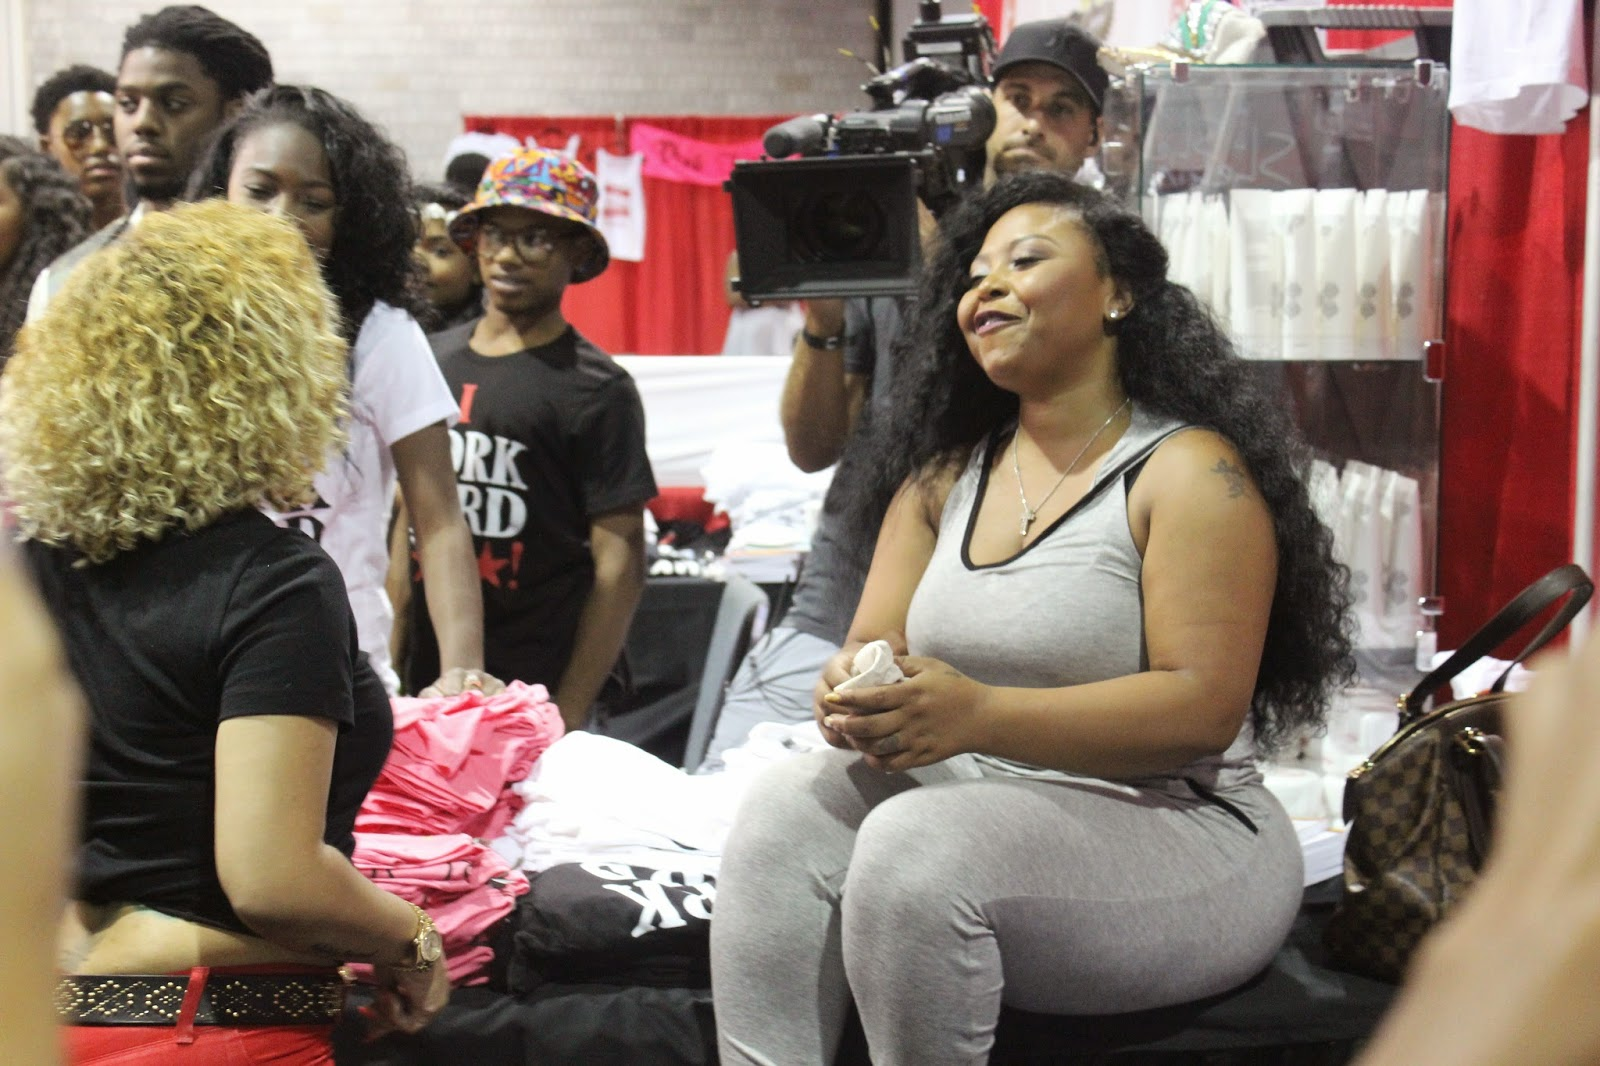 Myhartentcom Tiny Shekinah Jo Spotted Filming At Bronnerbrothers